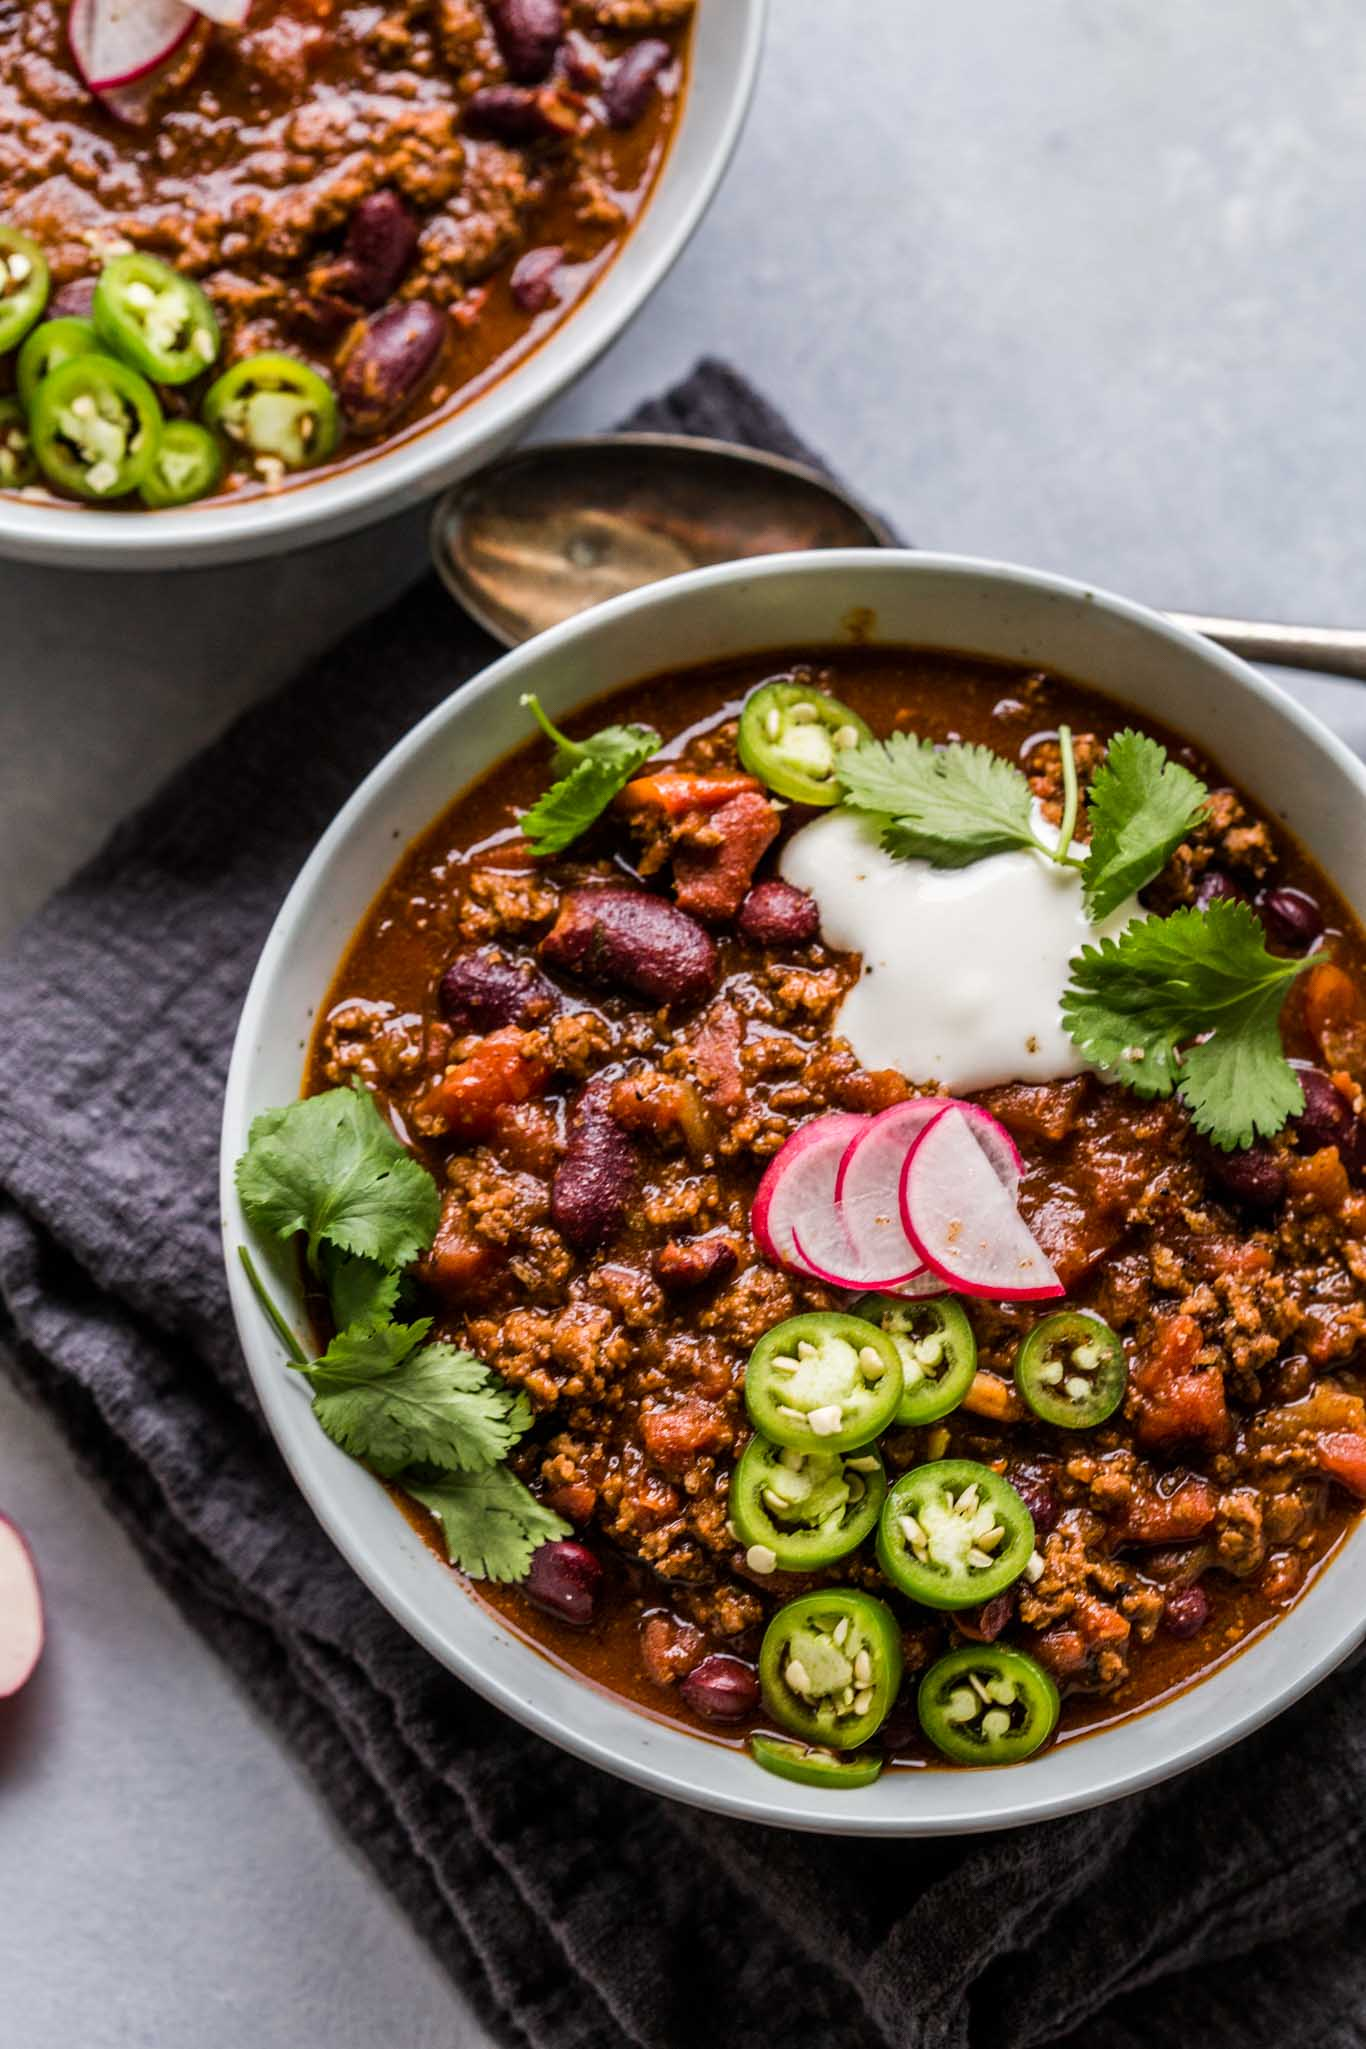 My Spicy Beef & Beer Chili is a hearty one-pot chili that's rich and spicy and perfect for chilly nights.